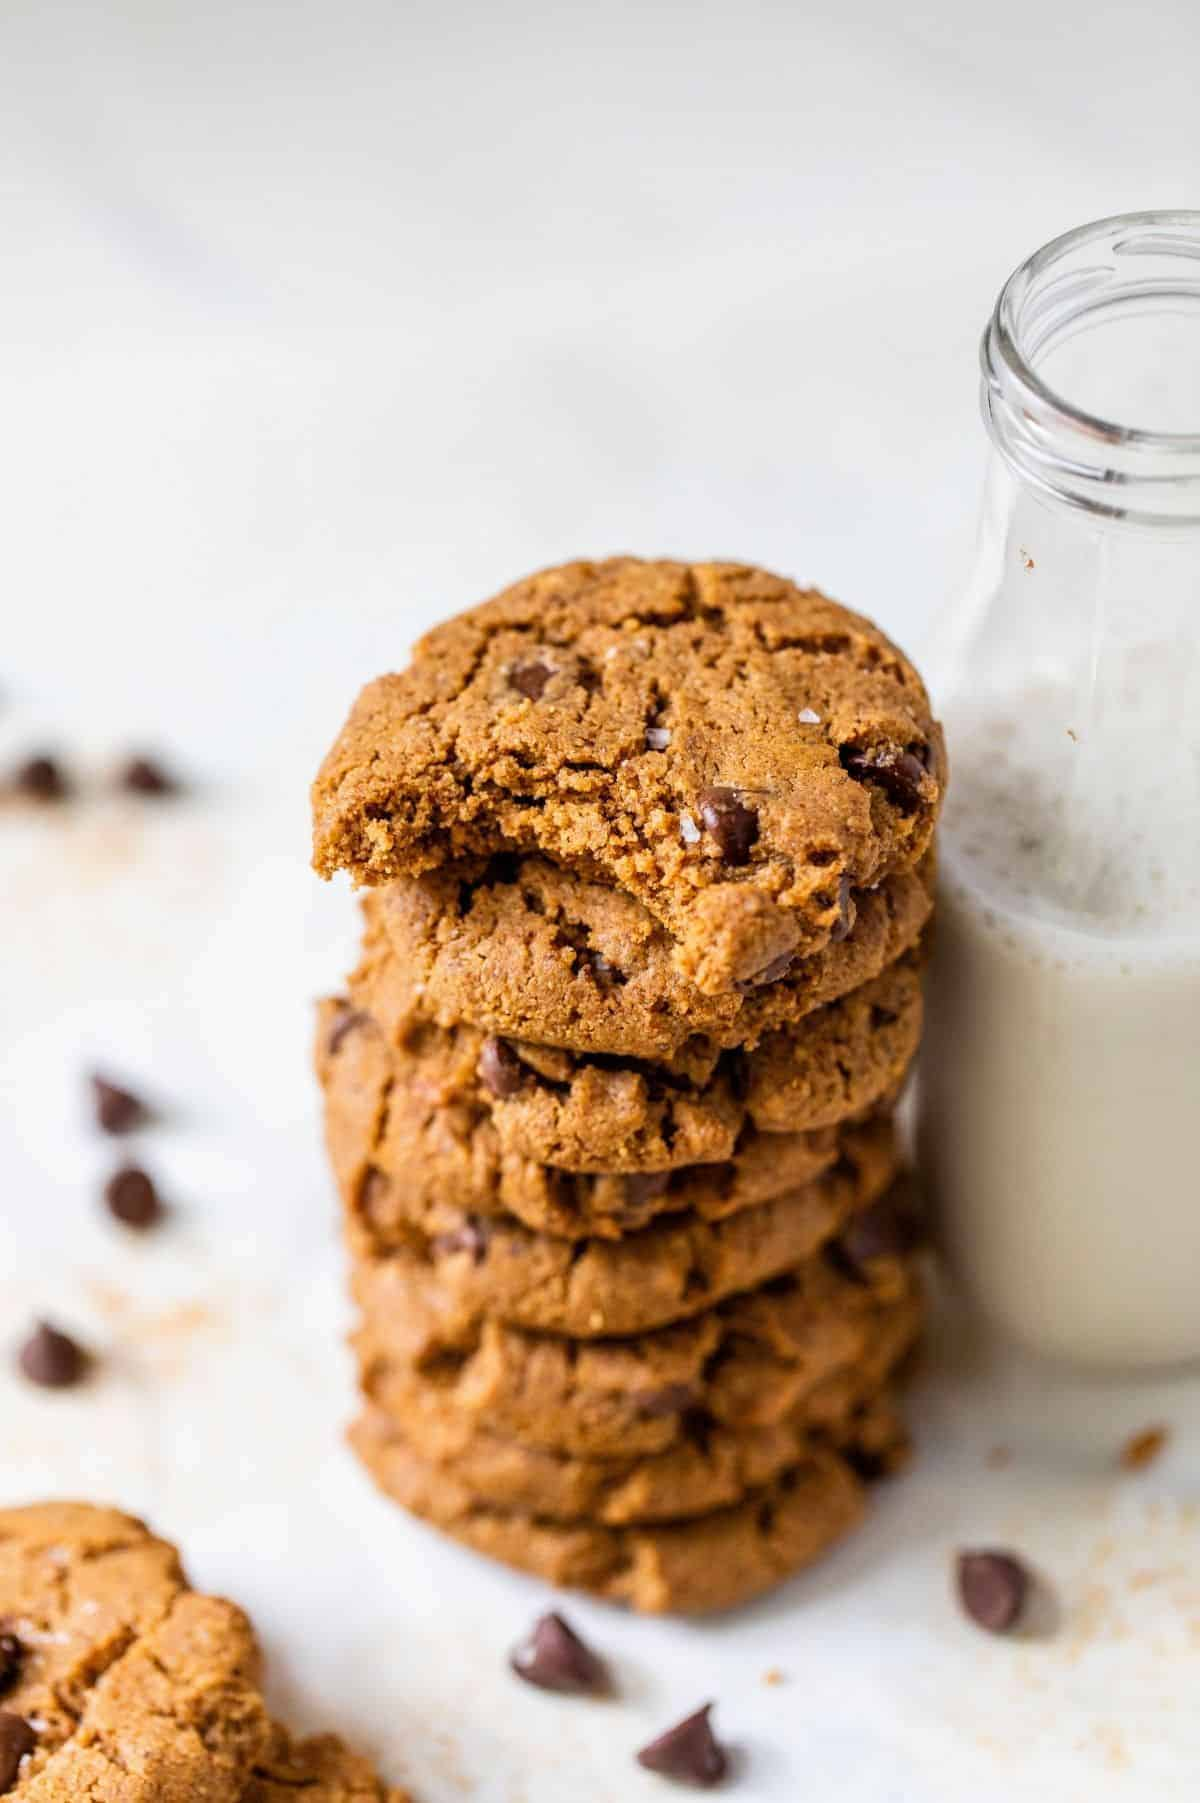 gluten-free chocolate chip cookies stacked near a jar of milk